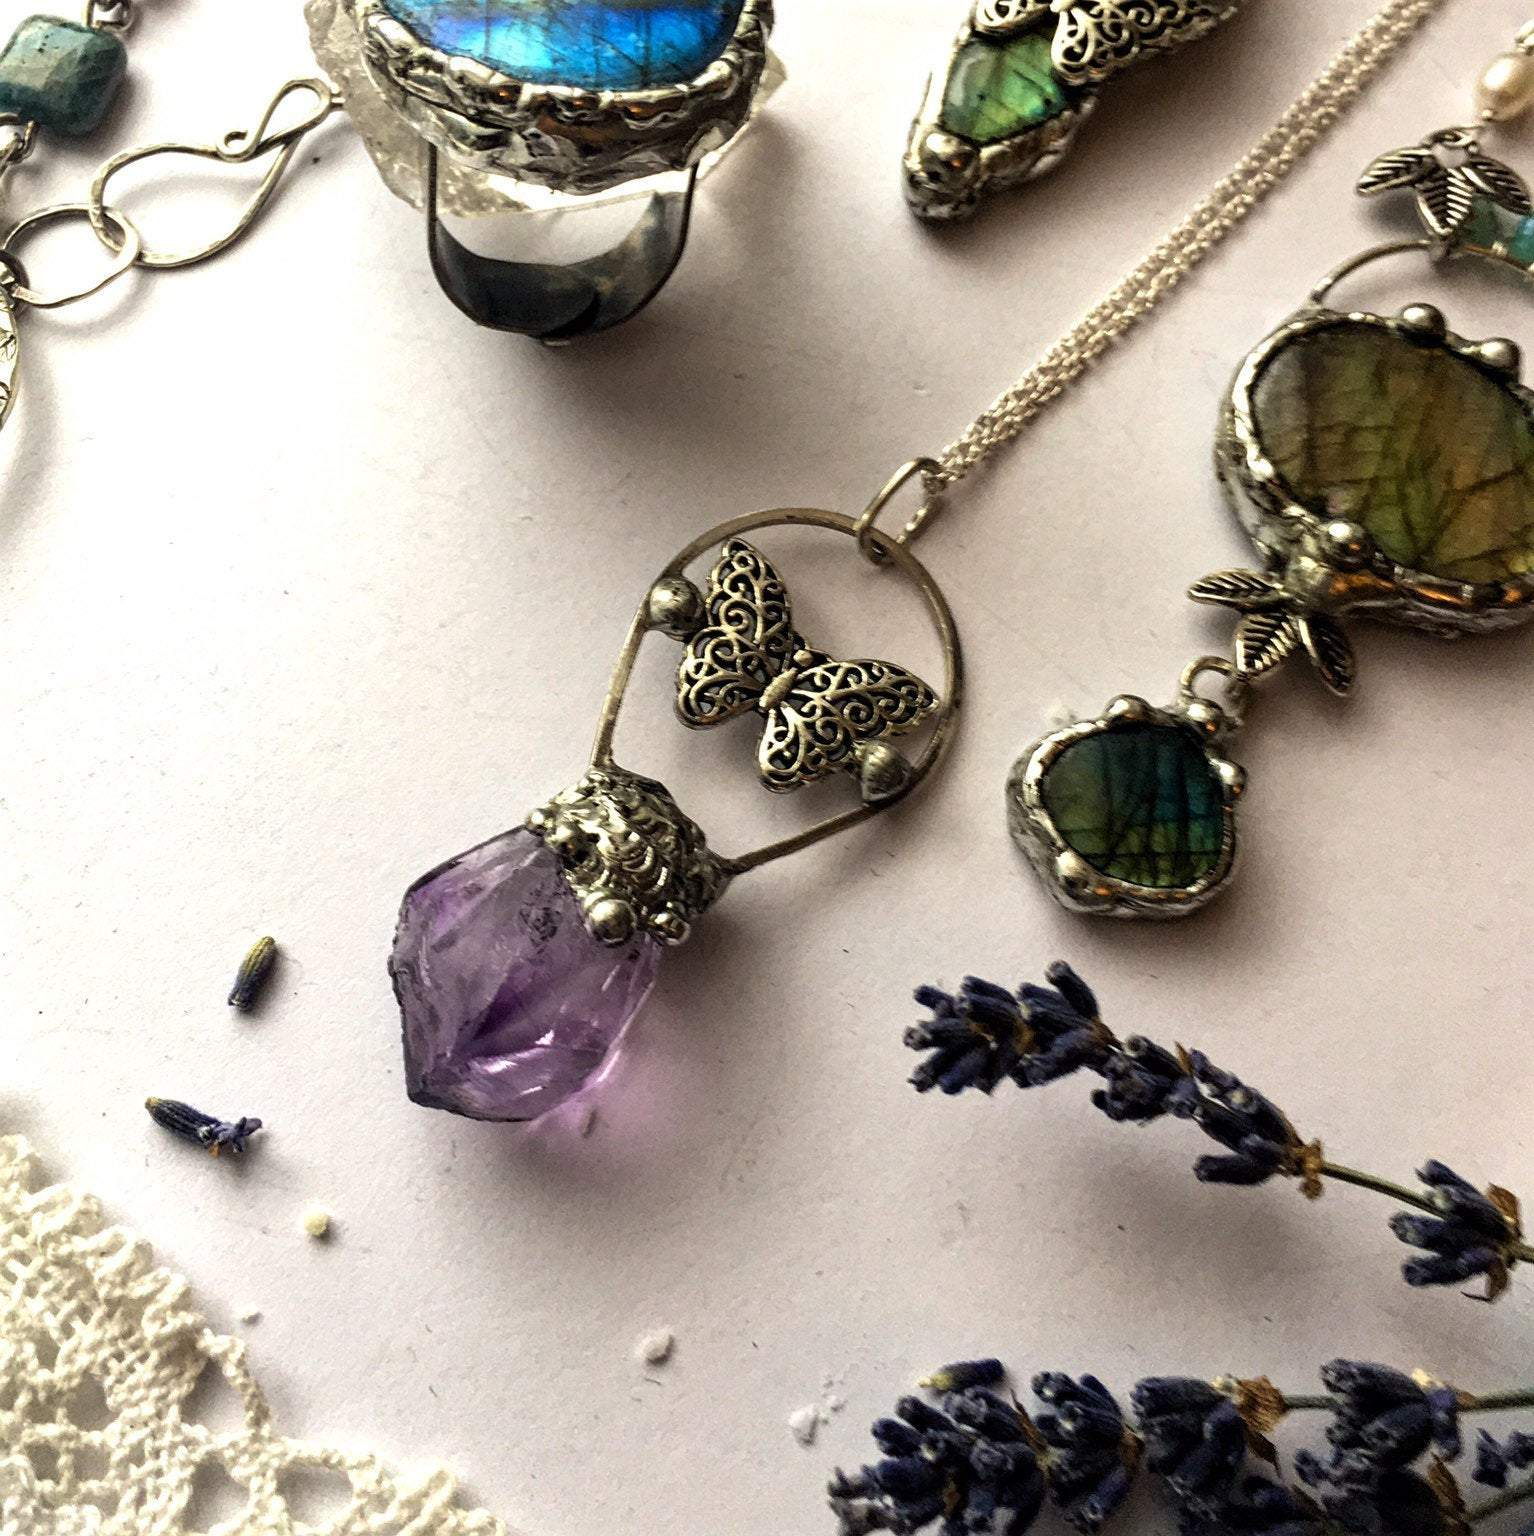 Amethyst Crystal Necklace with Butterfly Charm - Andune Jewellery